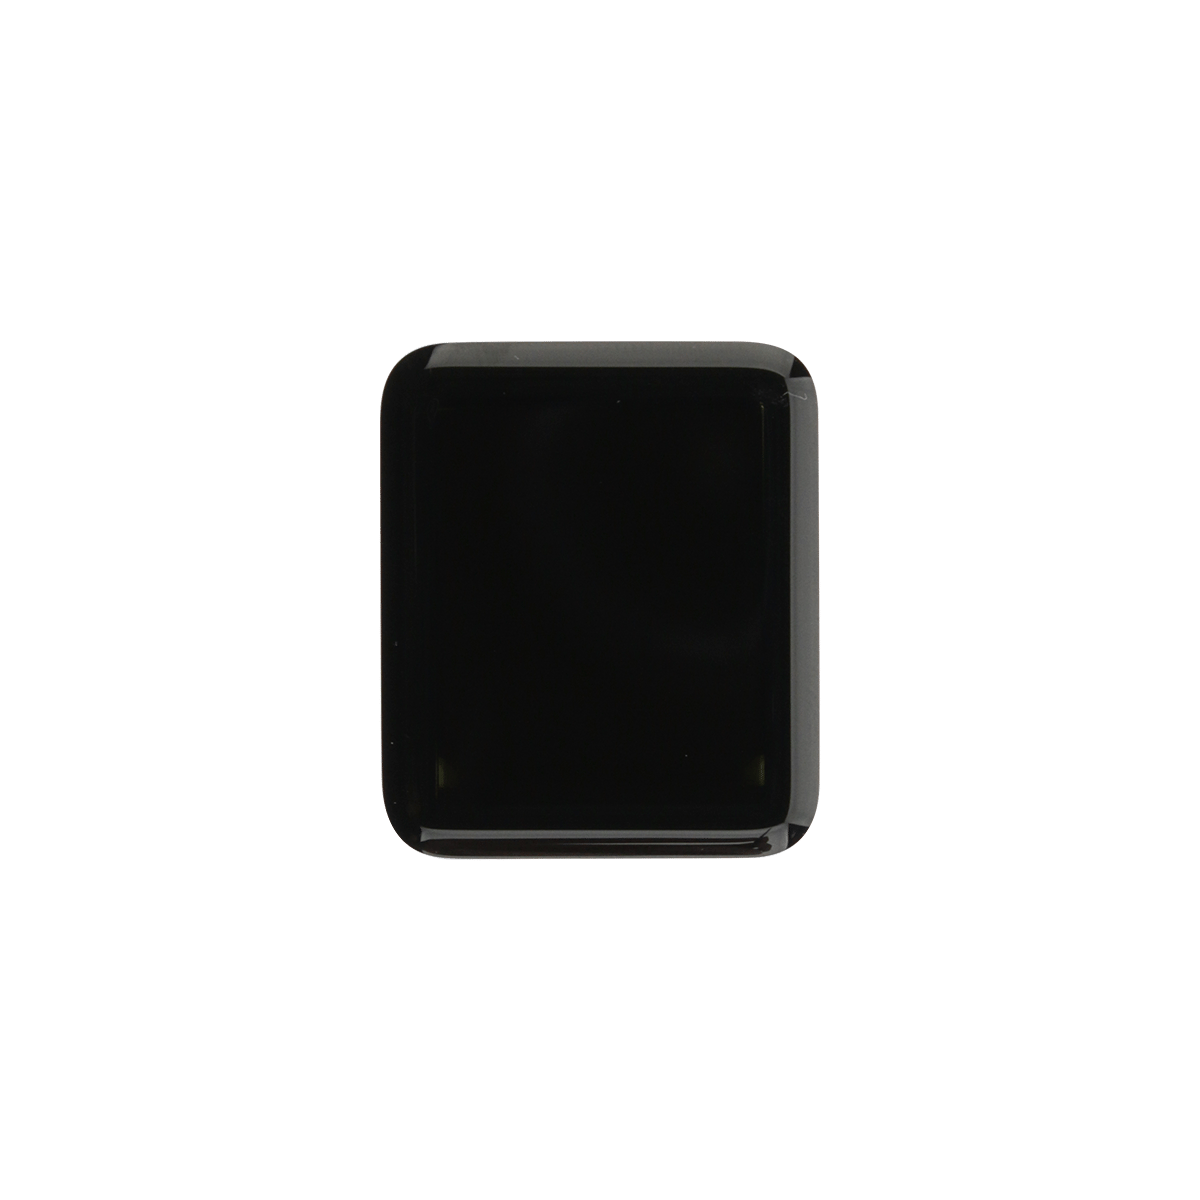 Apple Watch (Series 1 - 38 mm) Display Assembly Replacement